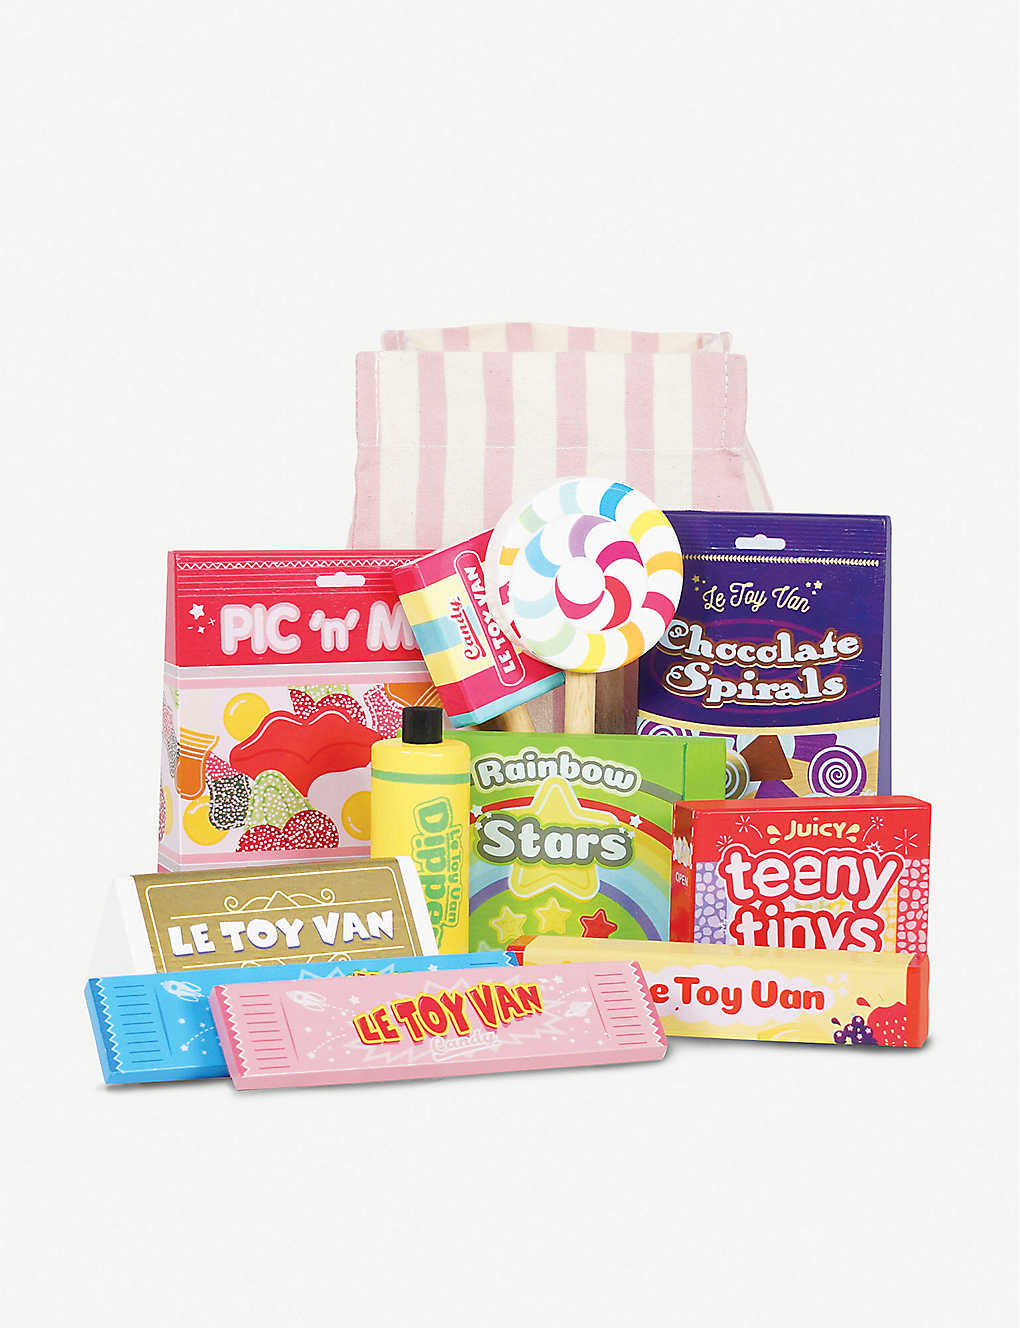 LE TOY VAN: Sweet & Candy Pic'n'Mix wooden toys